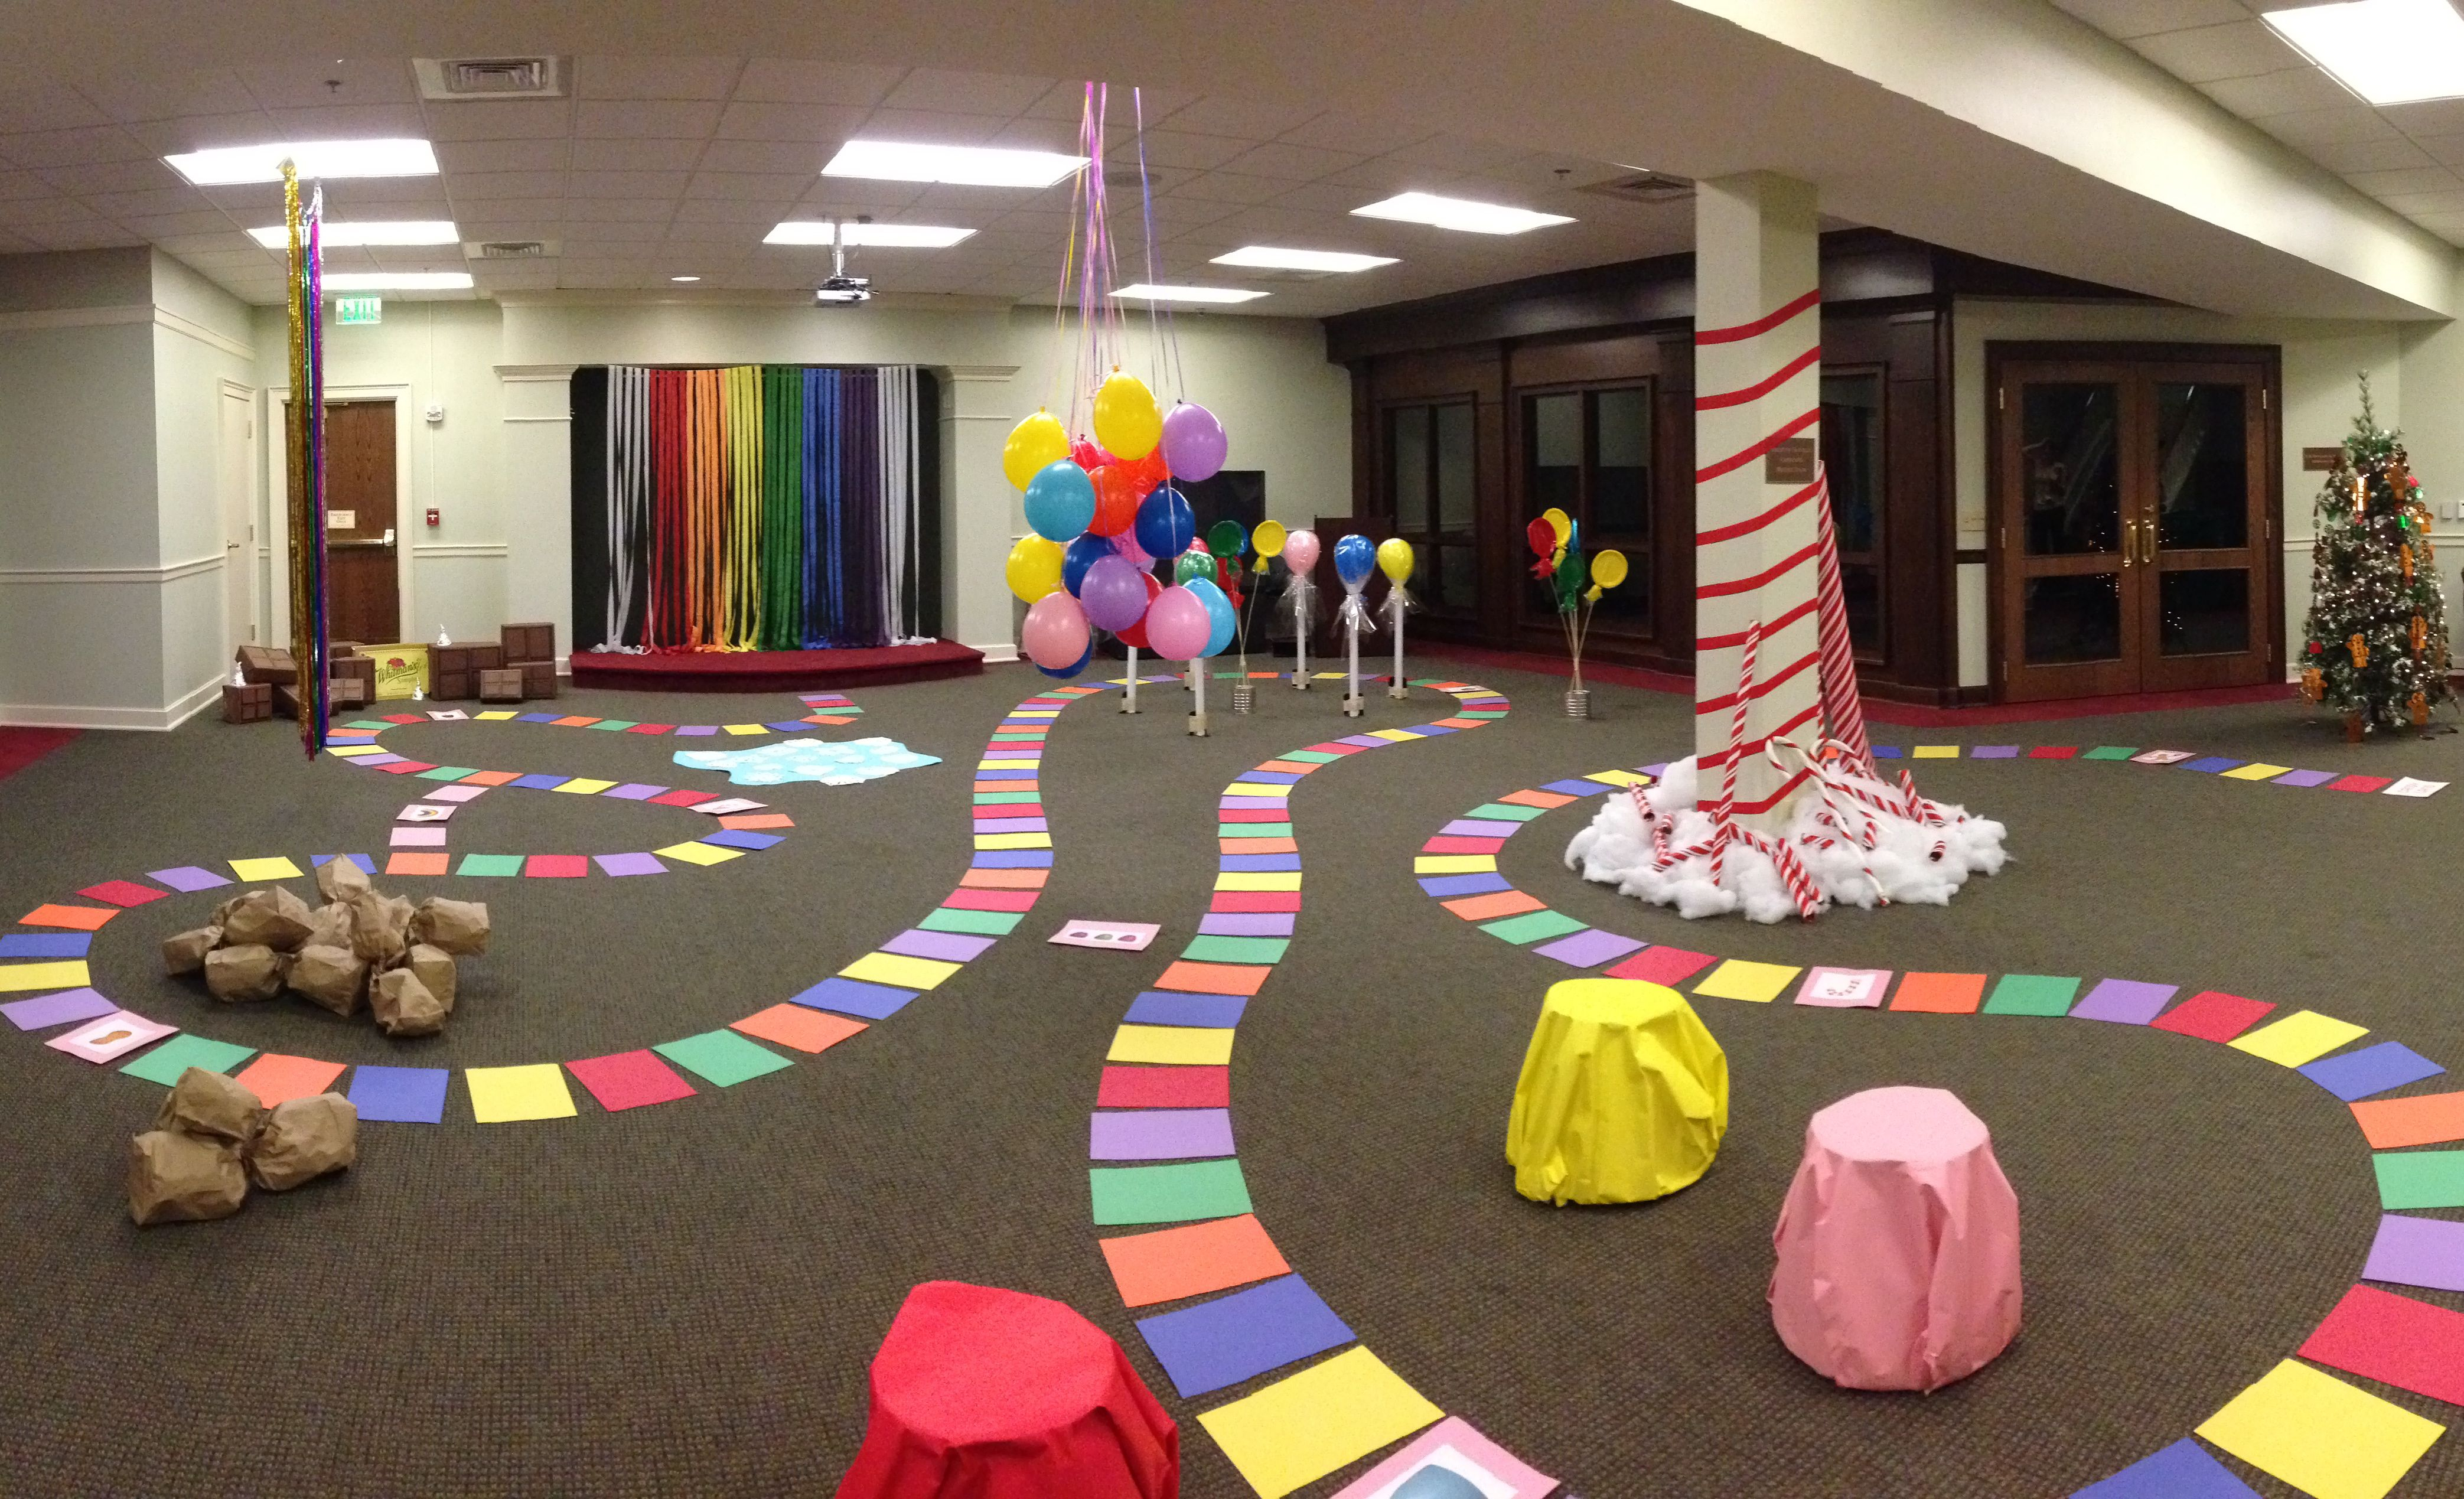 boyle county public library's life size candyland